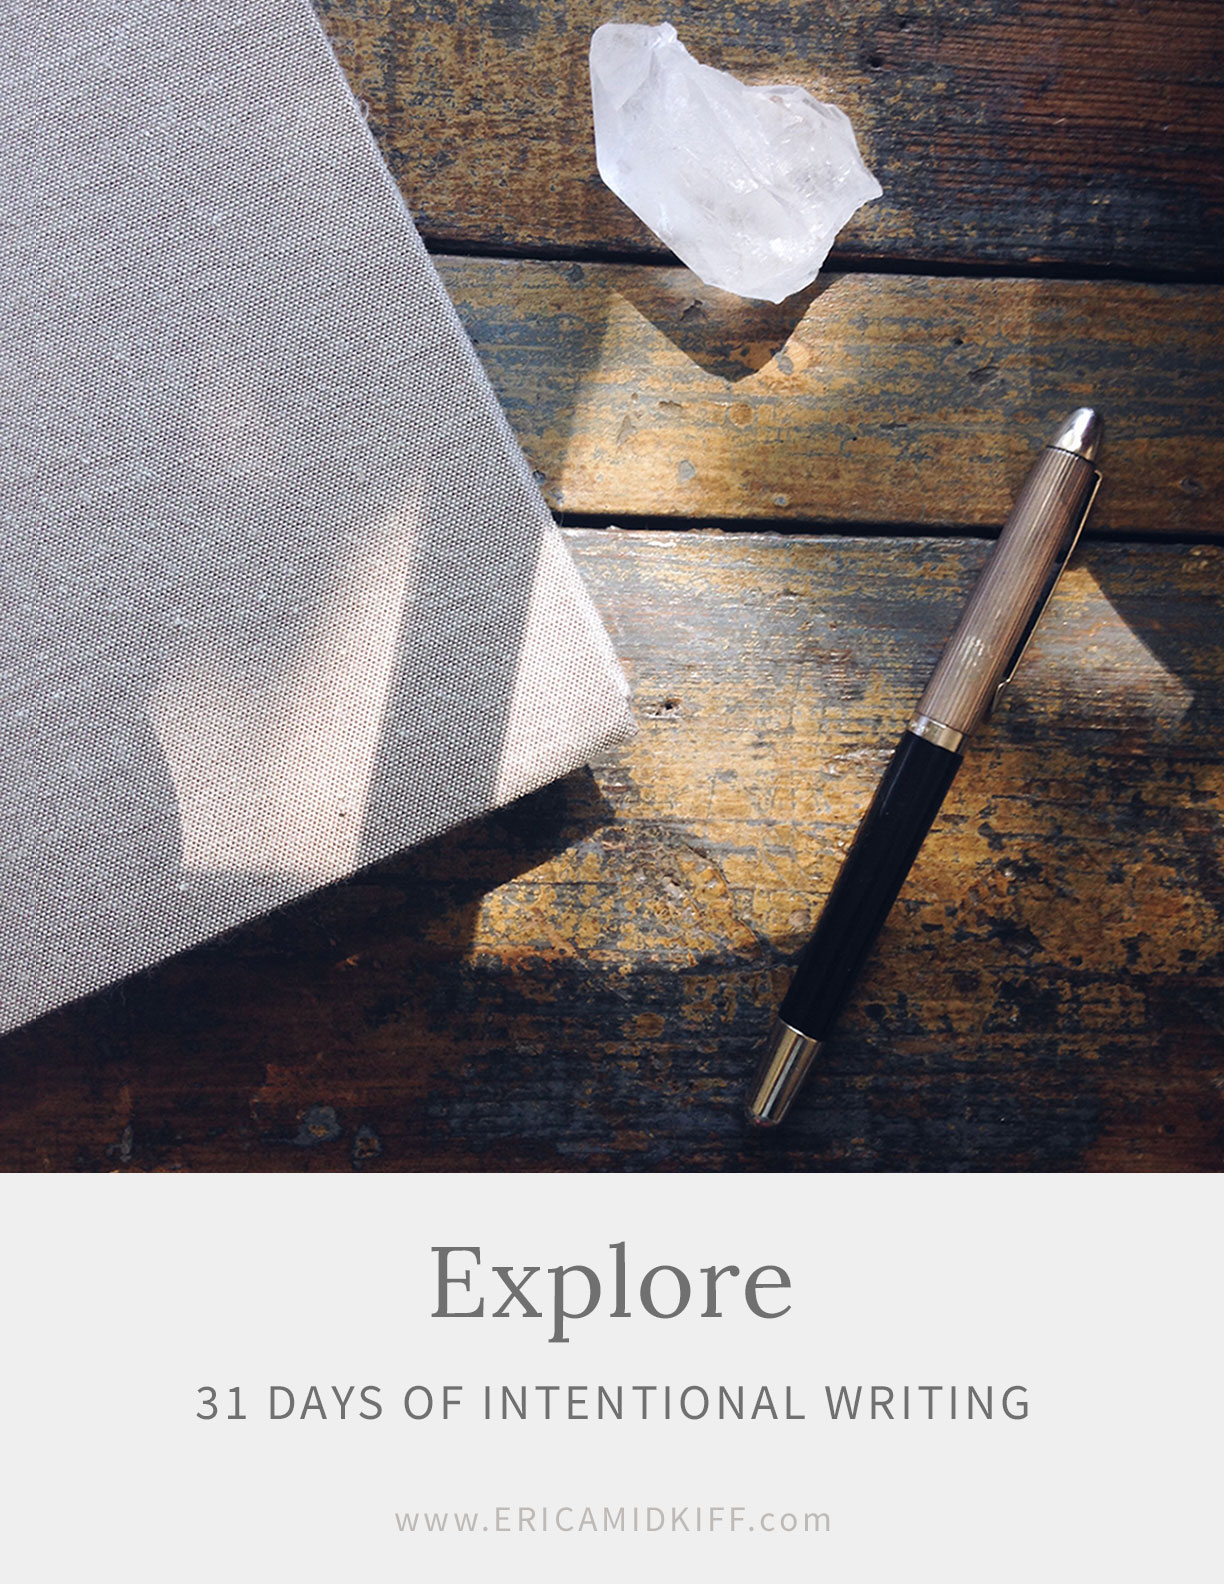 Explore--31-Days-of-Intentional-Writing--Erica-Midkiff.jpg